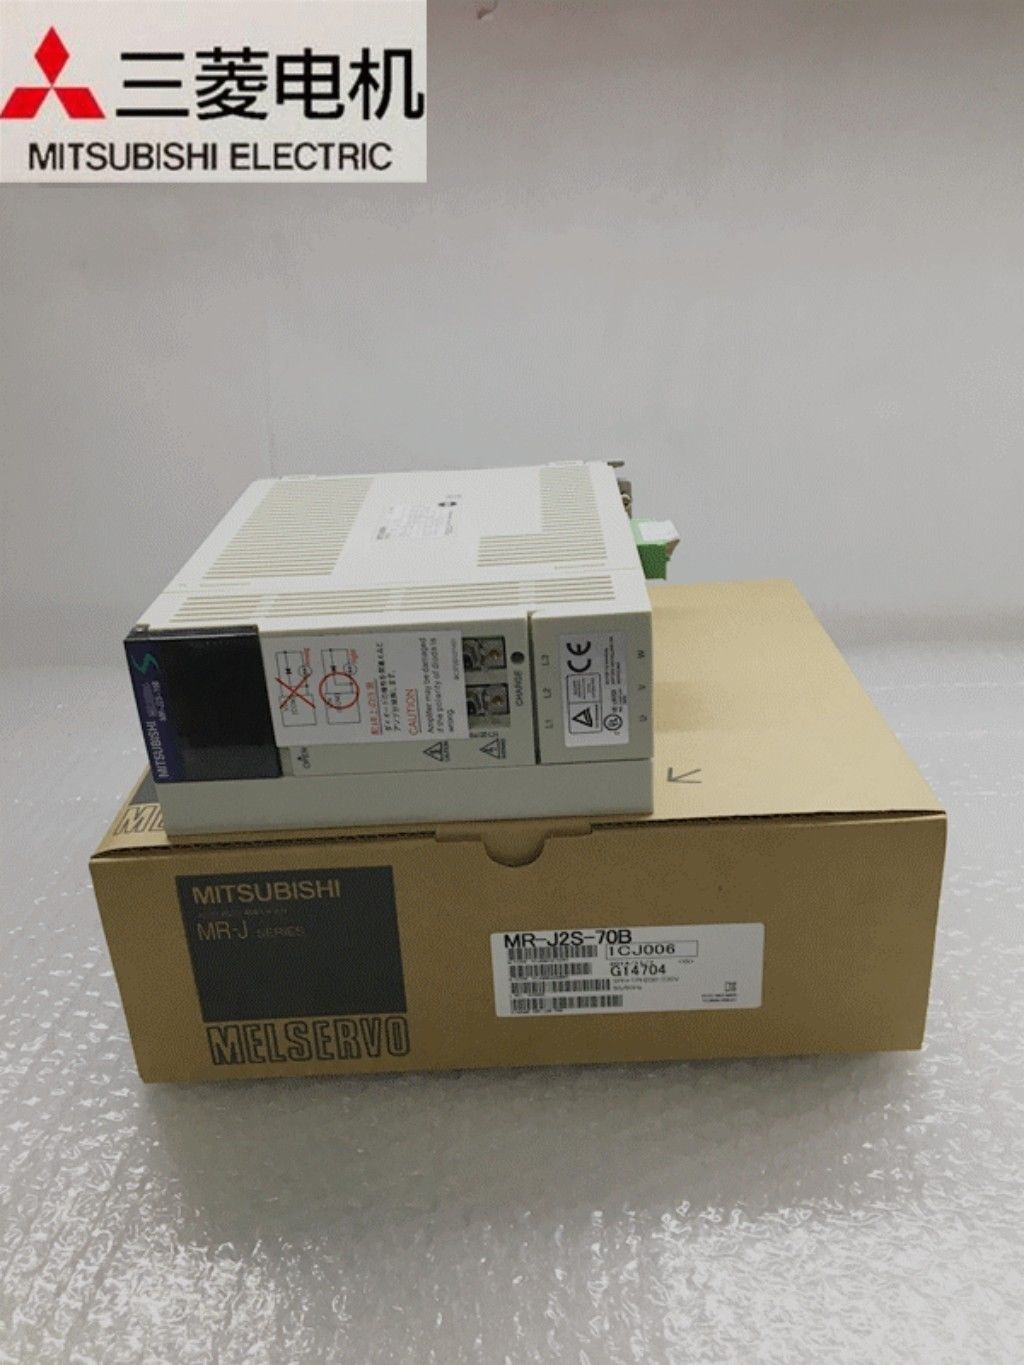 100% New Mitsubishi Servo Drive MR-J2S-70B in box MRJ2S70B